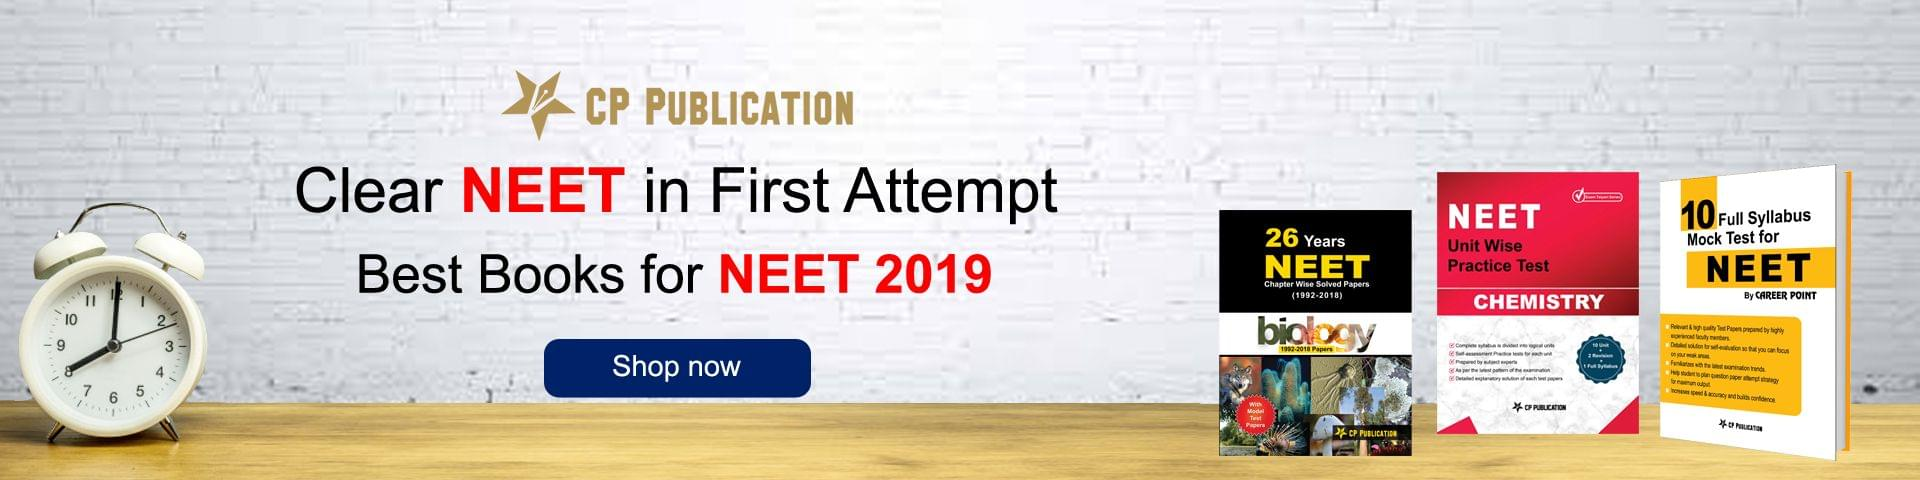 Best Books for NEET 2019